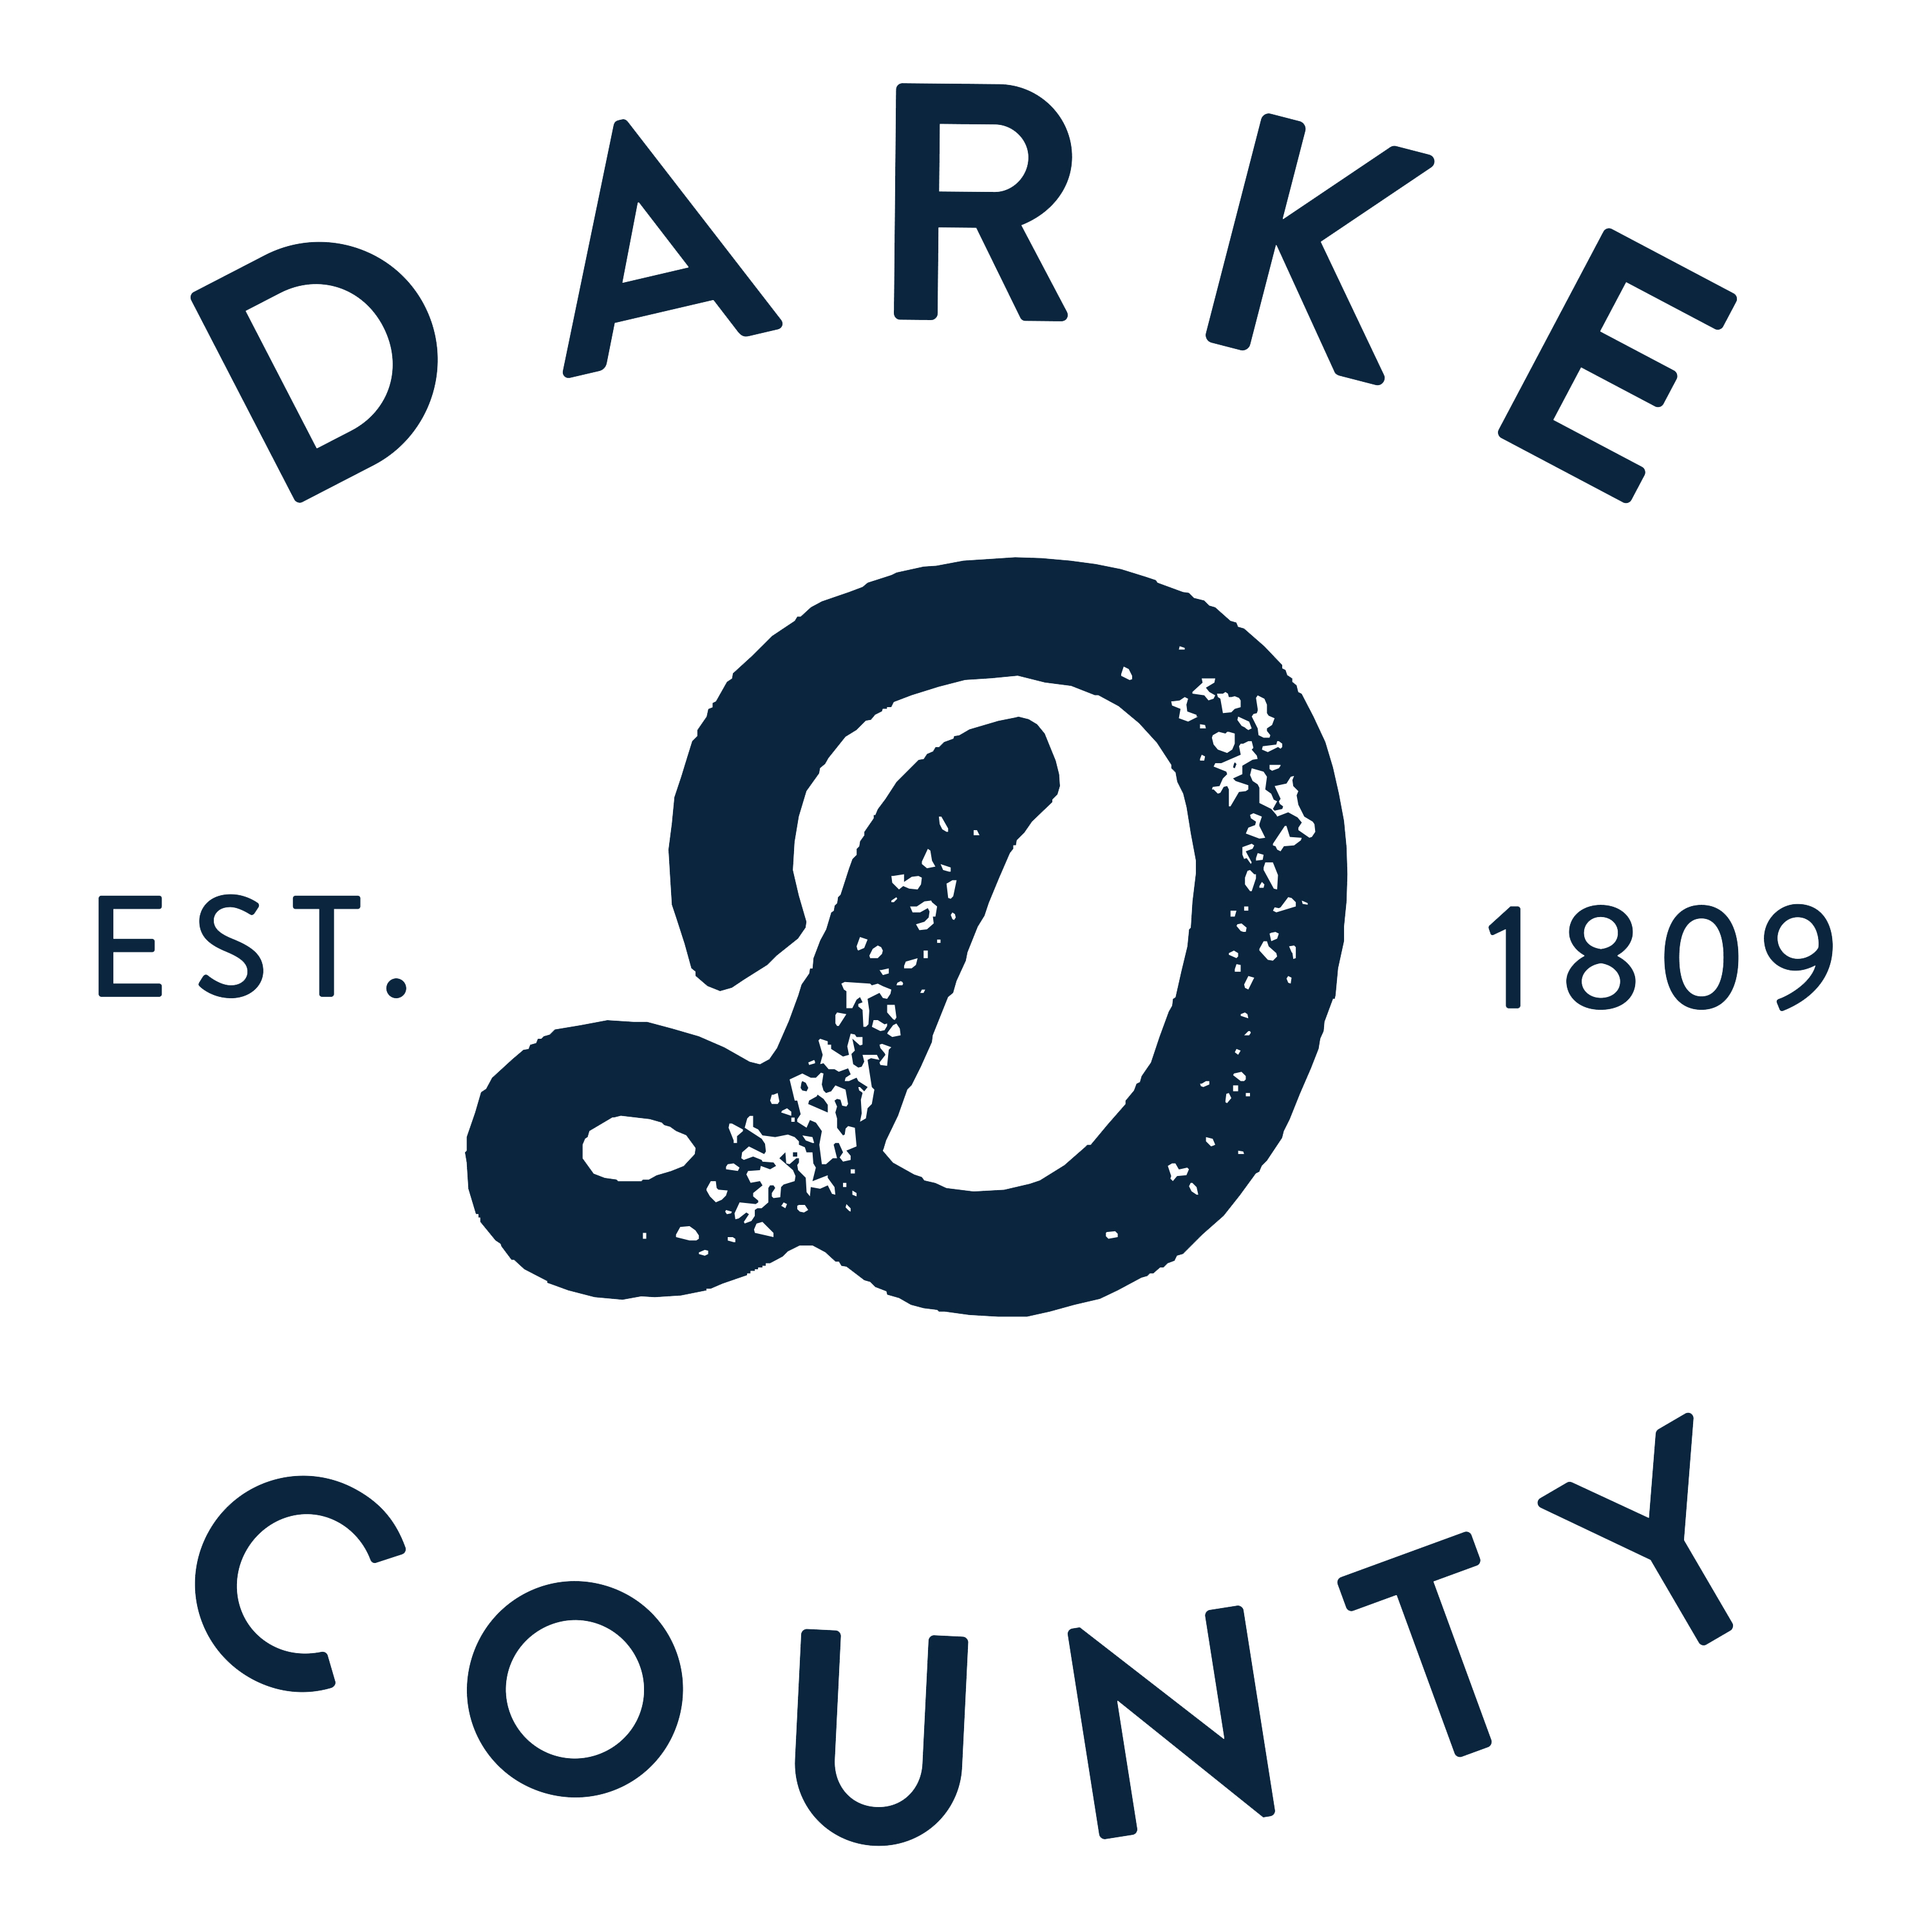 Darke County Visitors Bureau